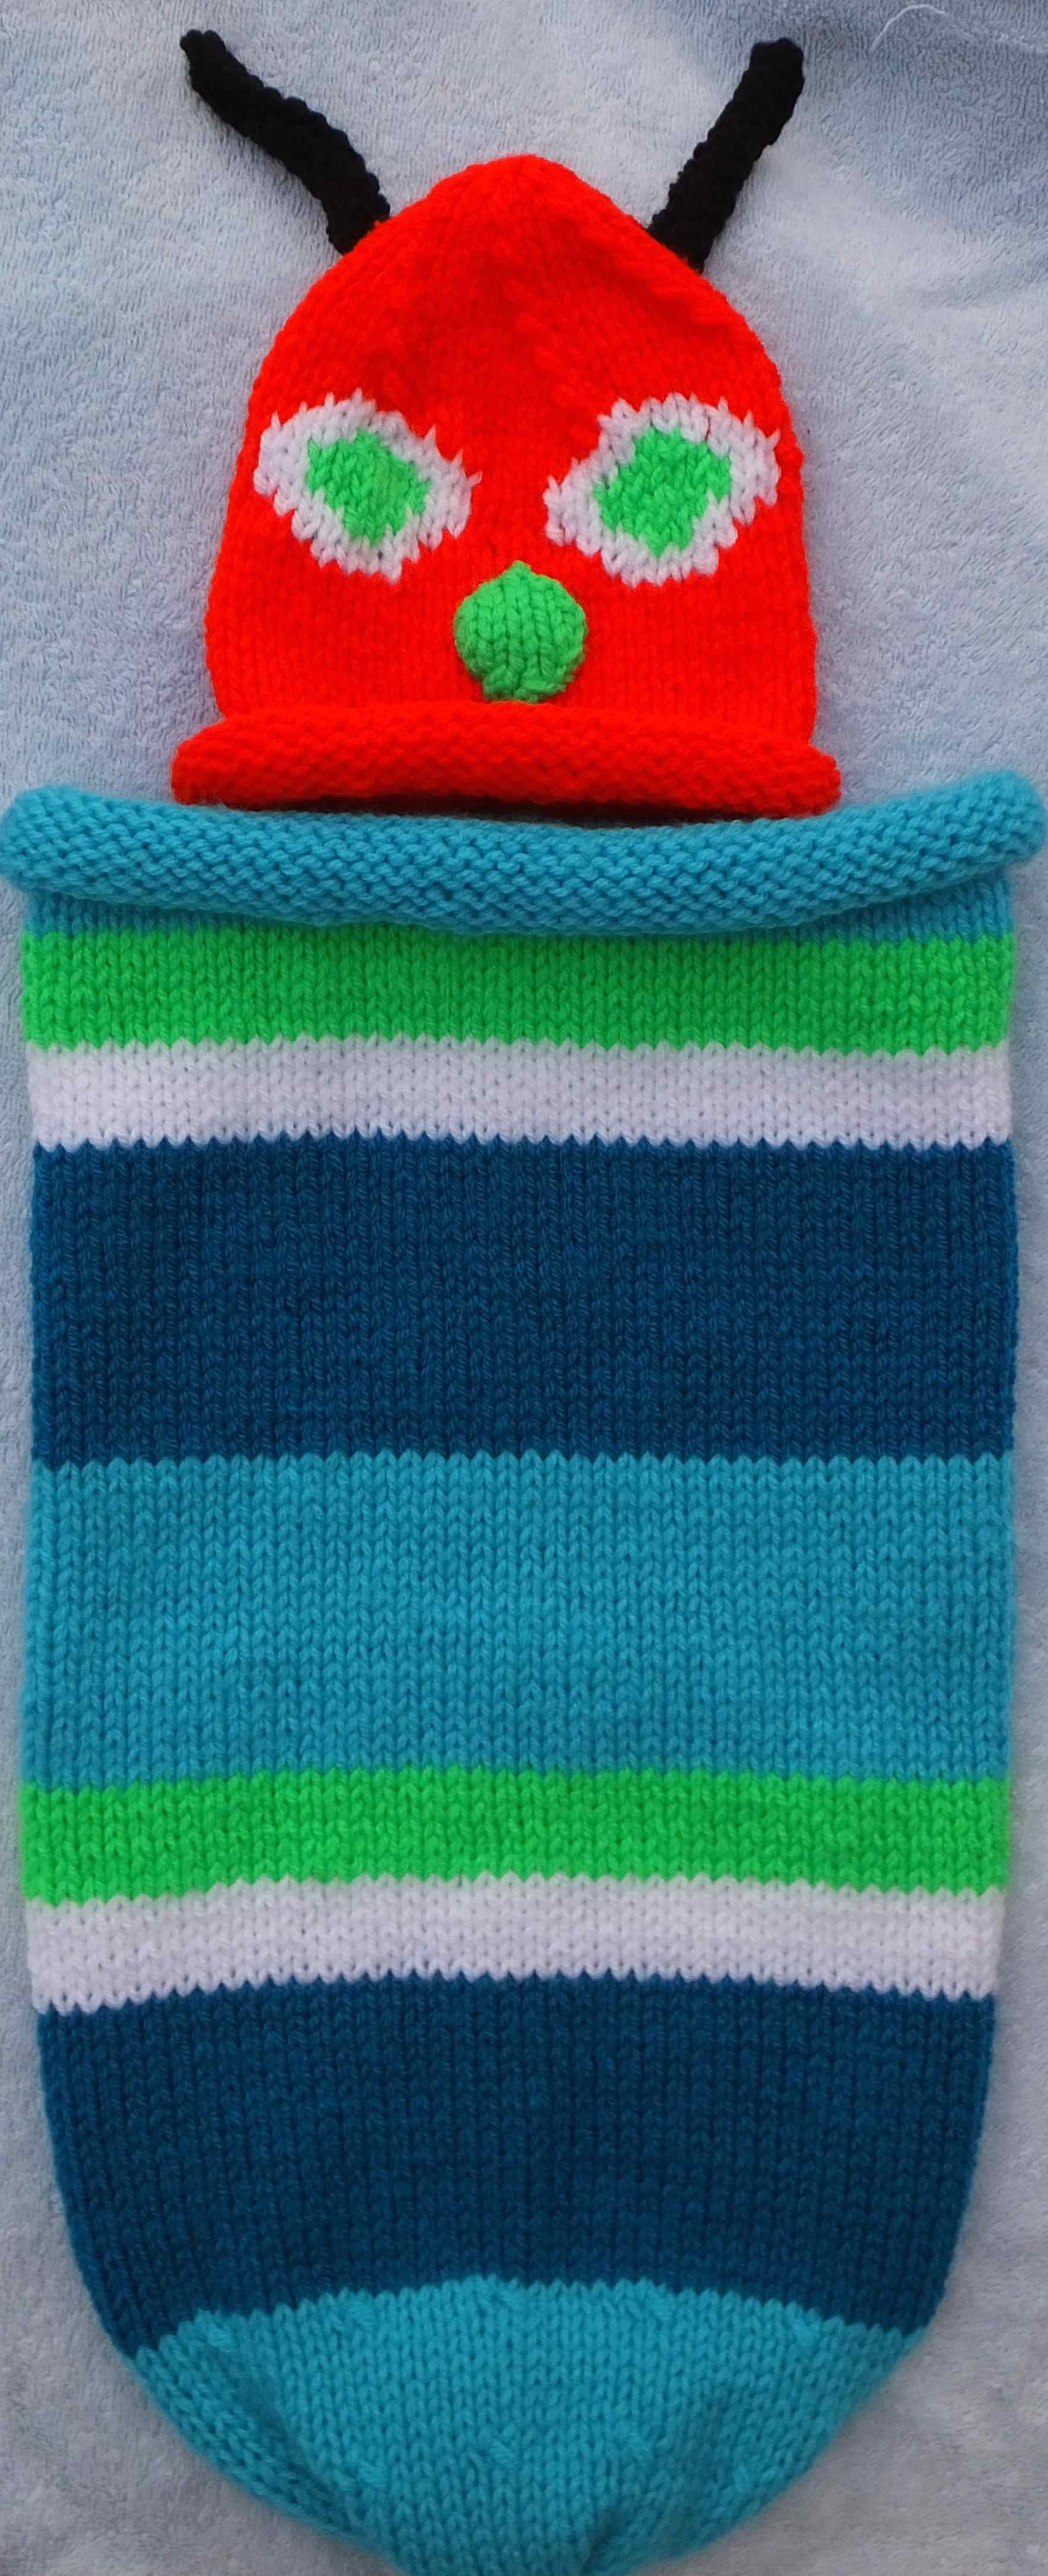 Double DK - Babies Hungry Caterpillar hat & sleeping bag / snuggle ...